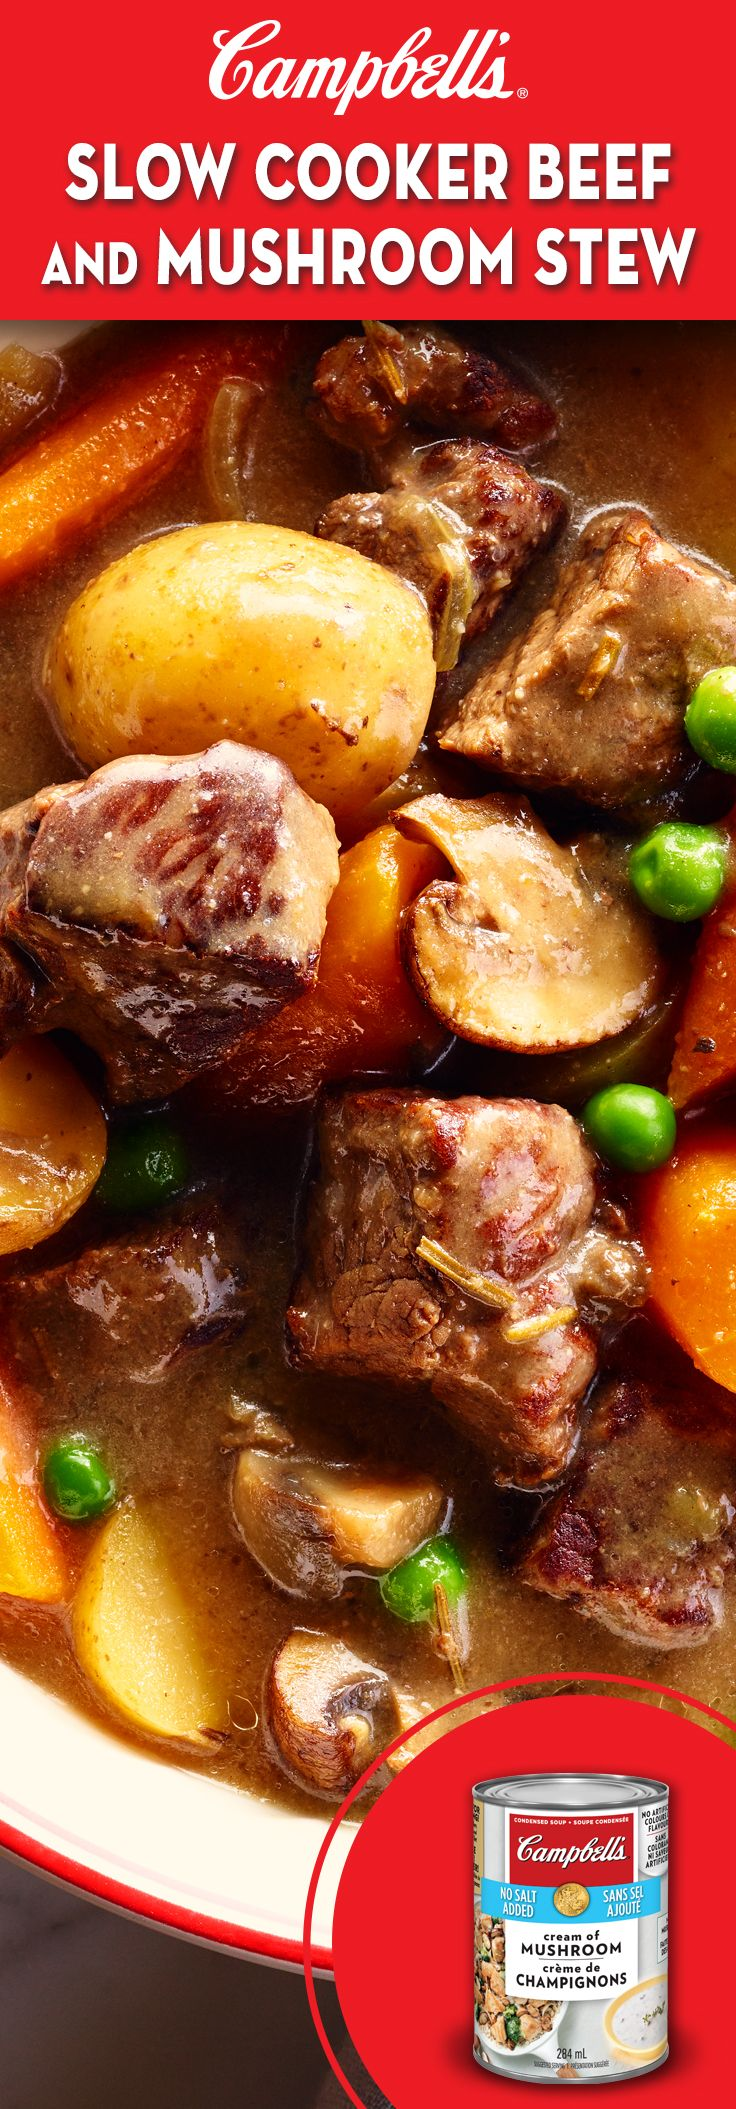 Photo of Slow Cooker Beef and Mushroom Stew